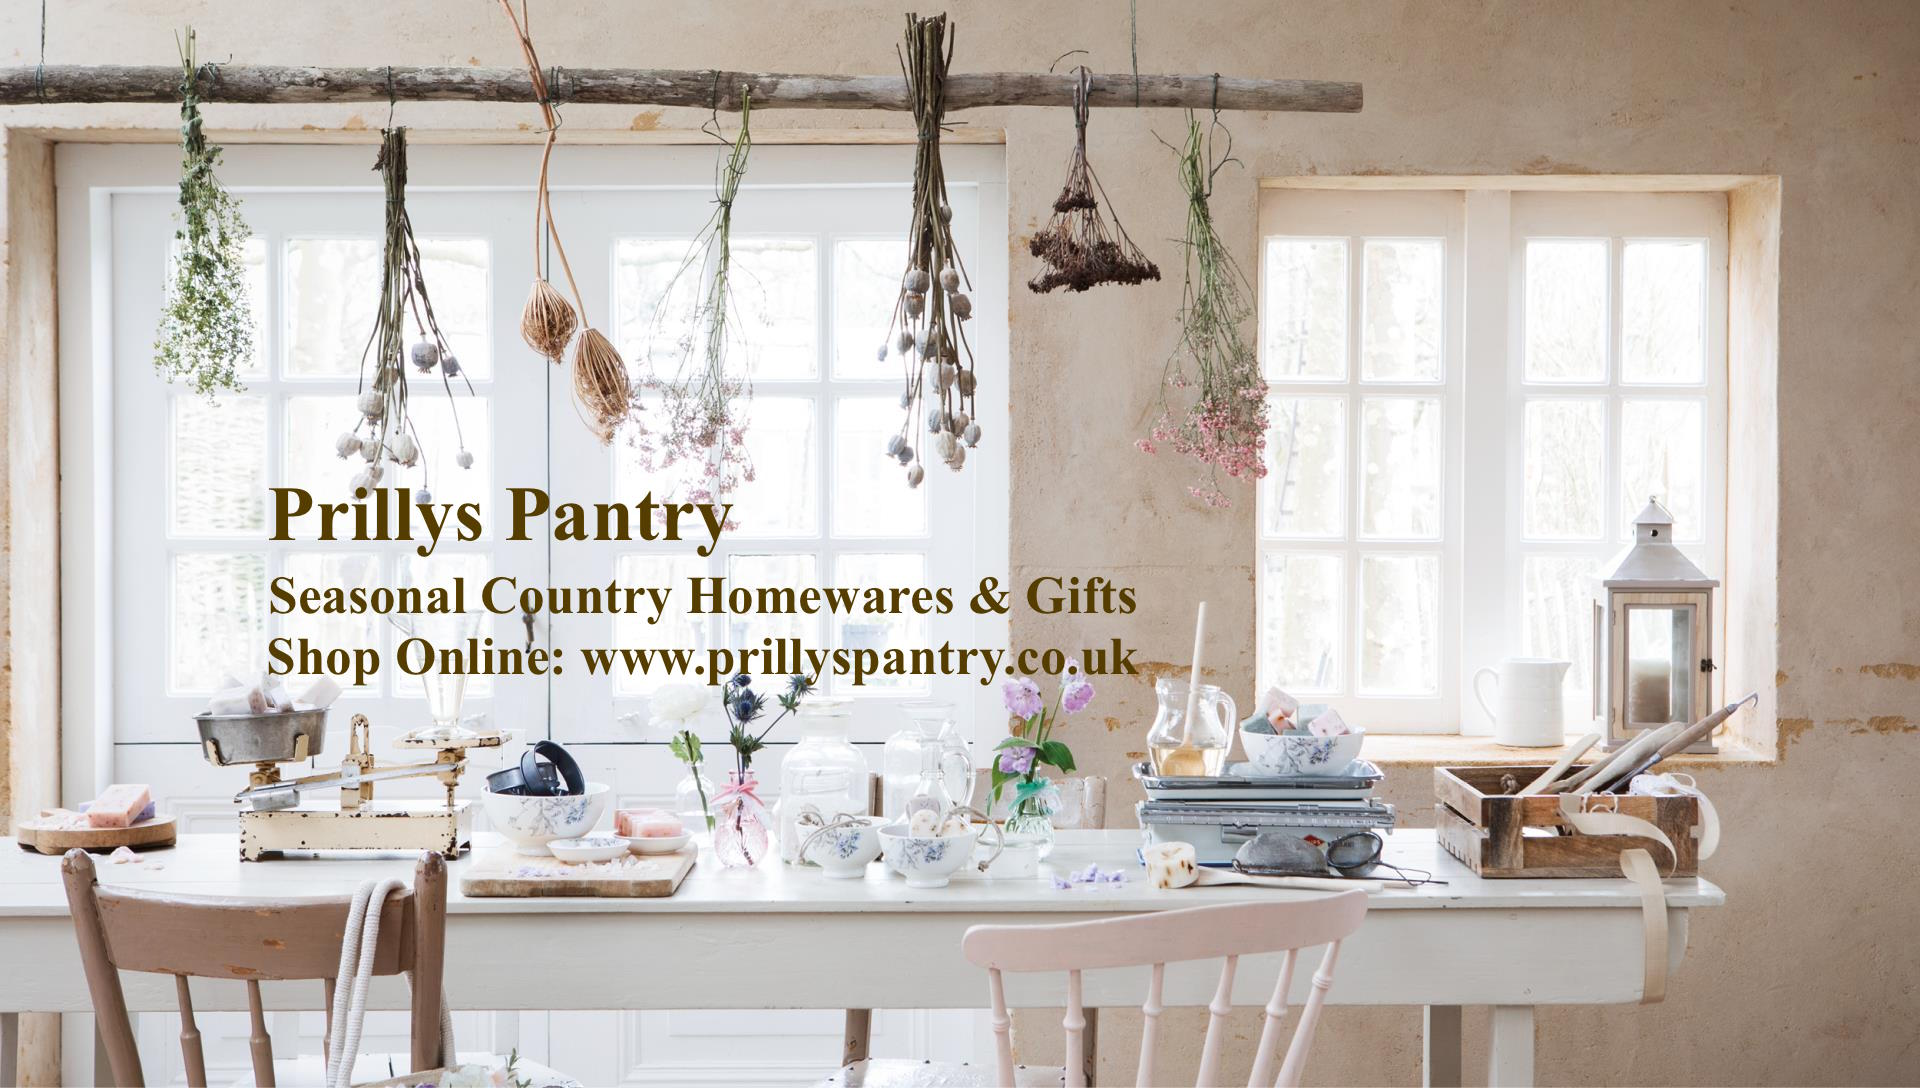 www.prillyspantry.co.uk_Spring_2020